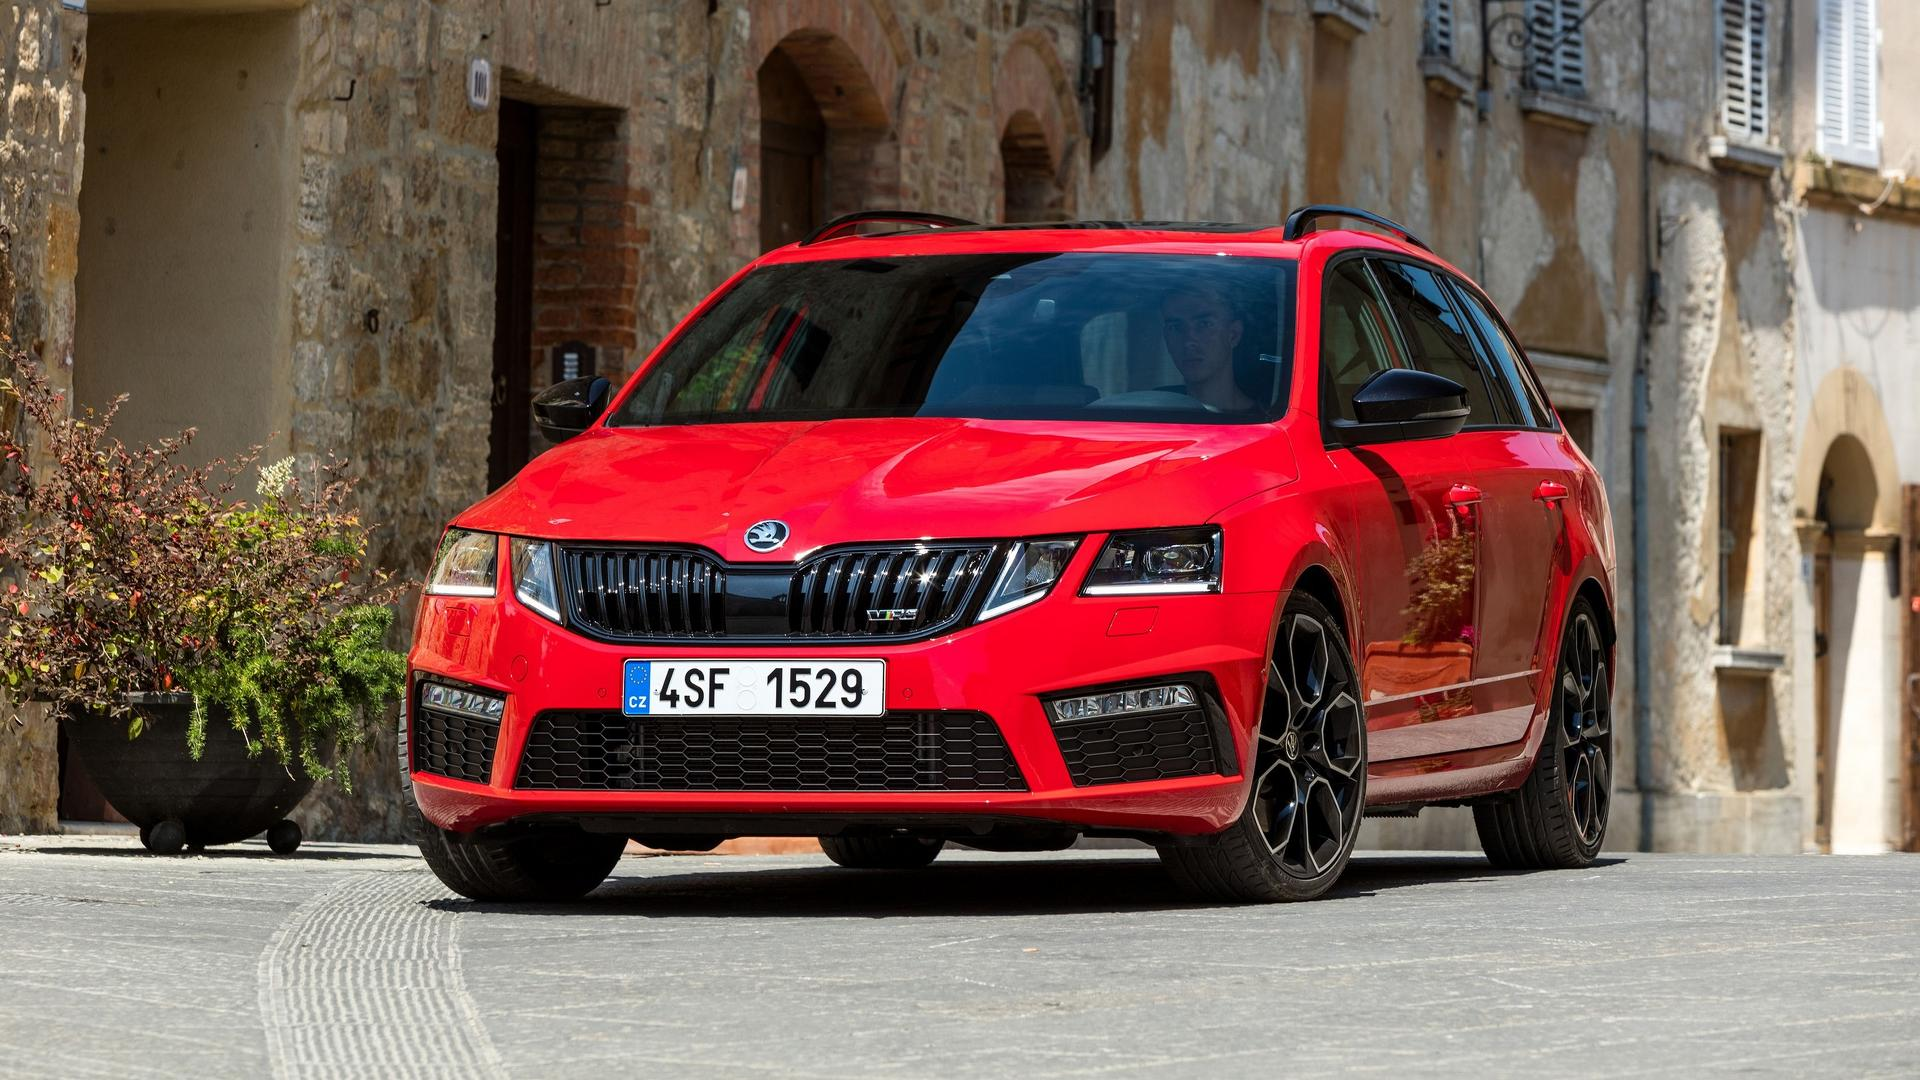 skoda octavia rs 245 shows its sporty side in new images videos. Black Bedroom Furniture Sets. Home Design Ideas